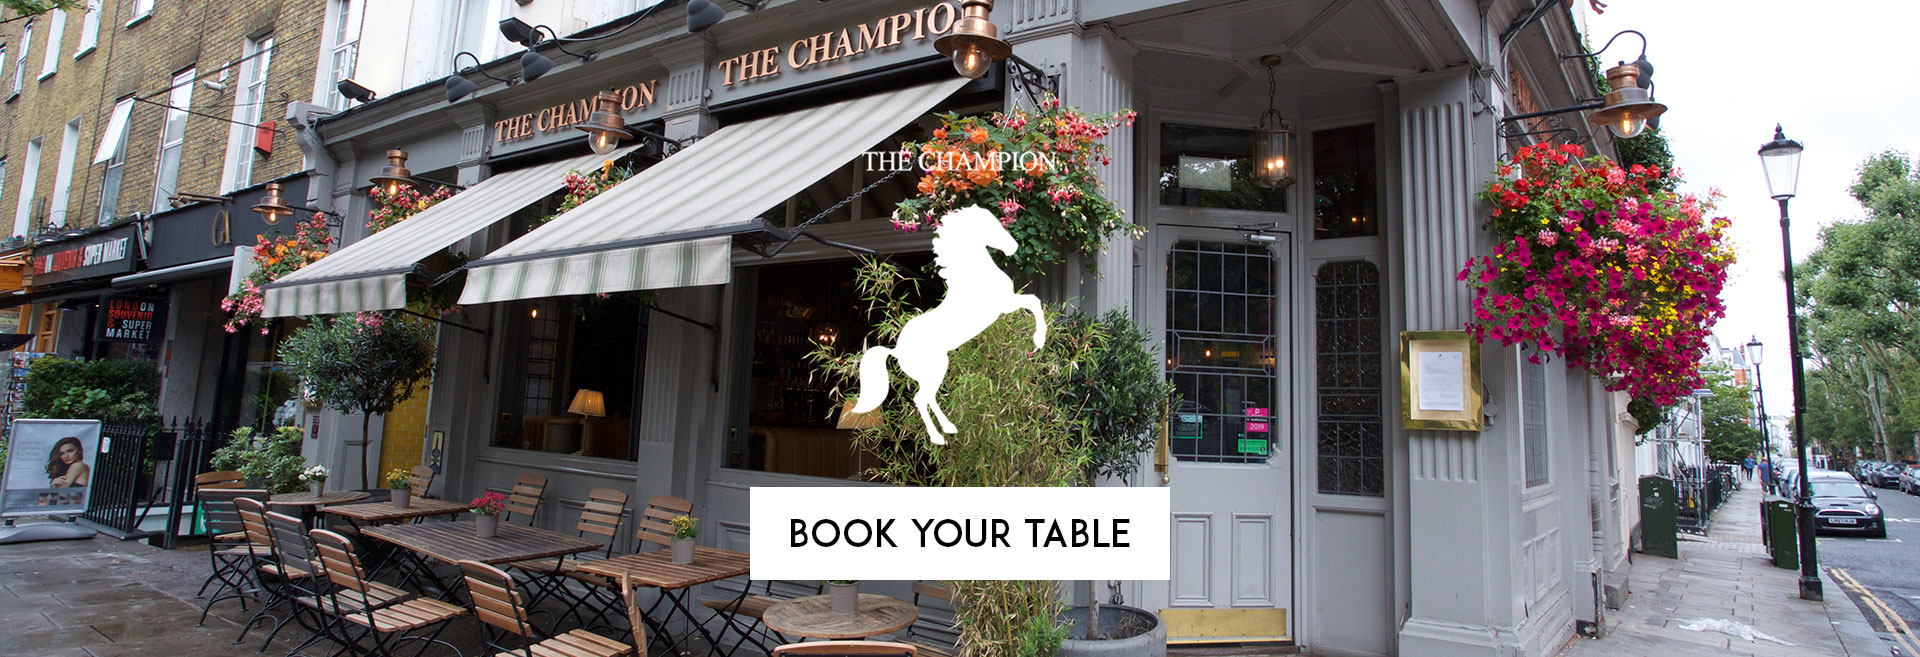 Book Your Table at The Champion